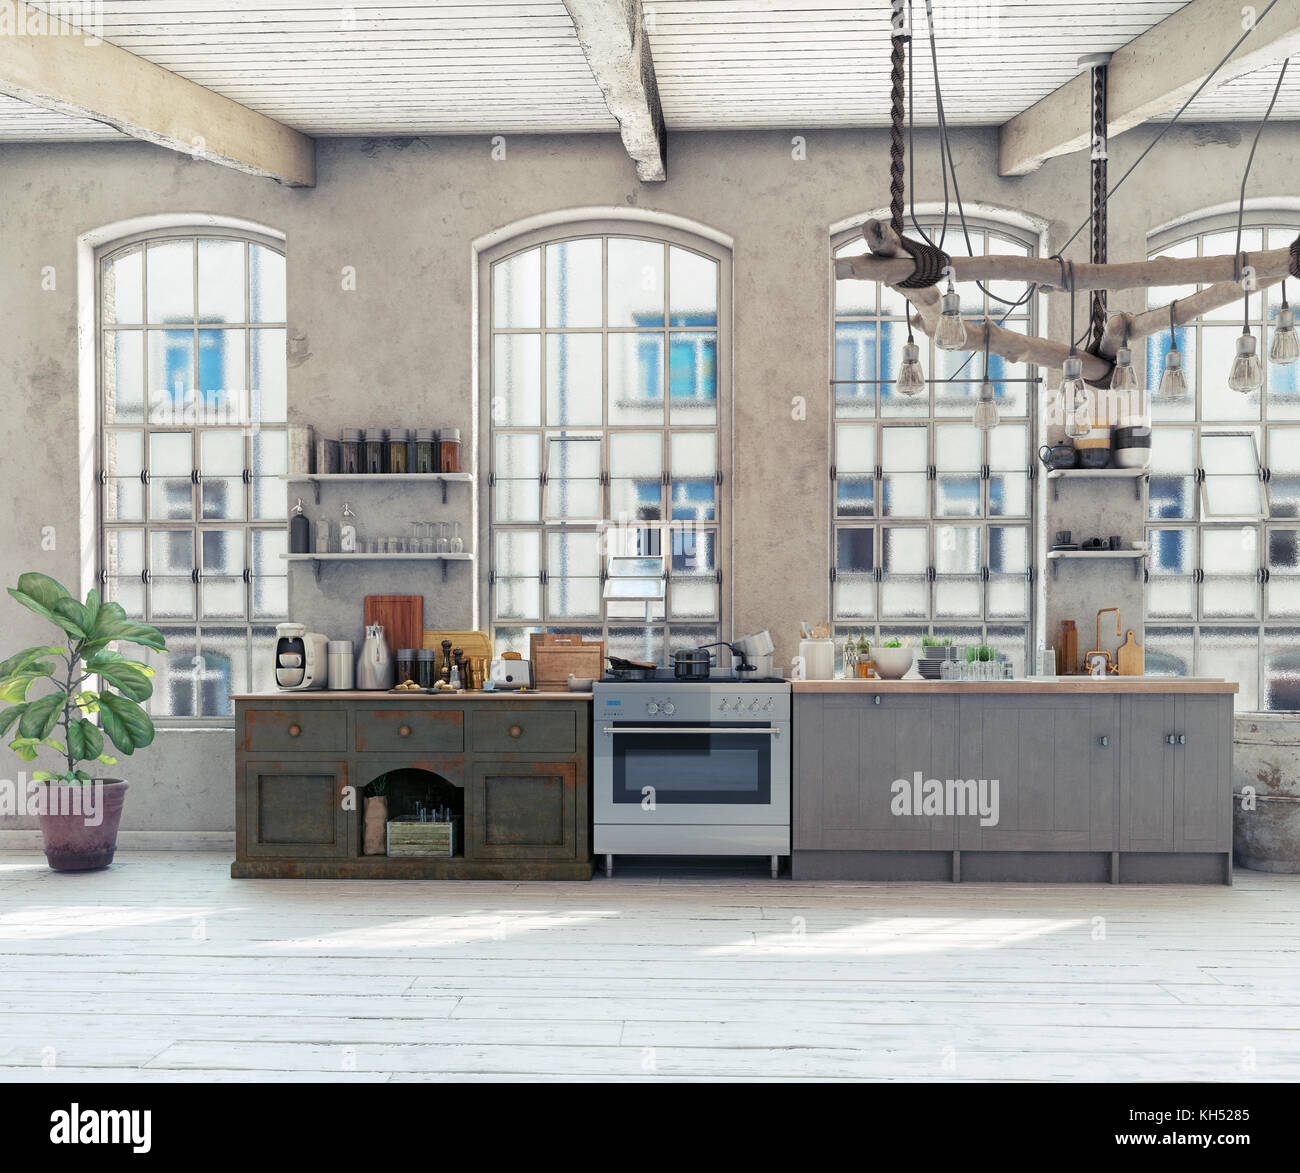 Attic loft kitchen interior. 3d rendering concept - Stock Image